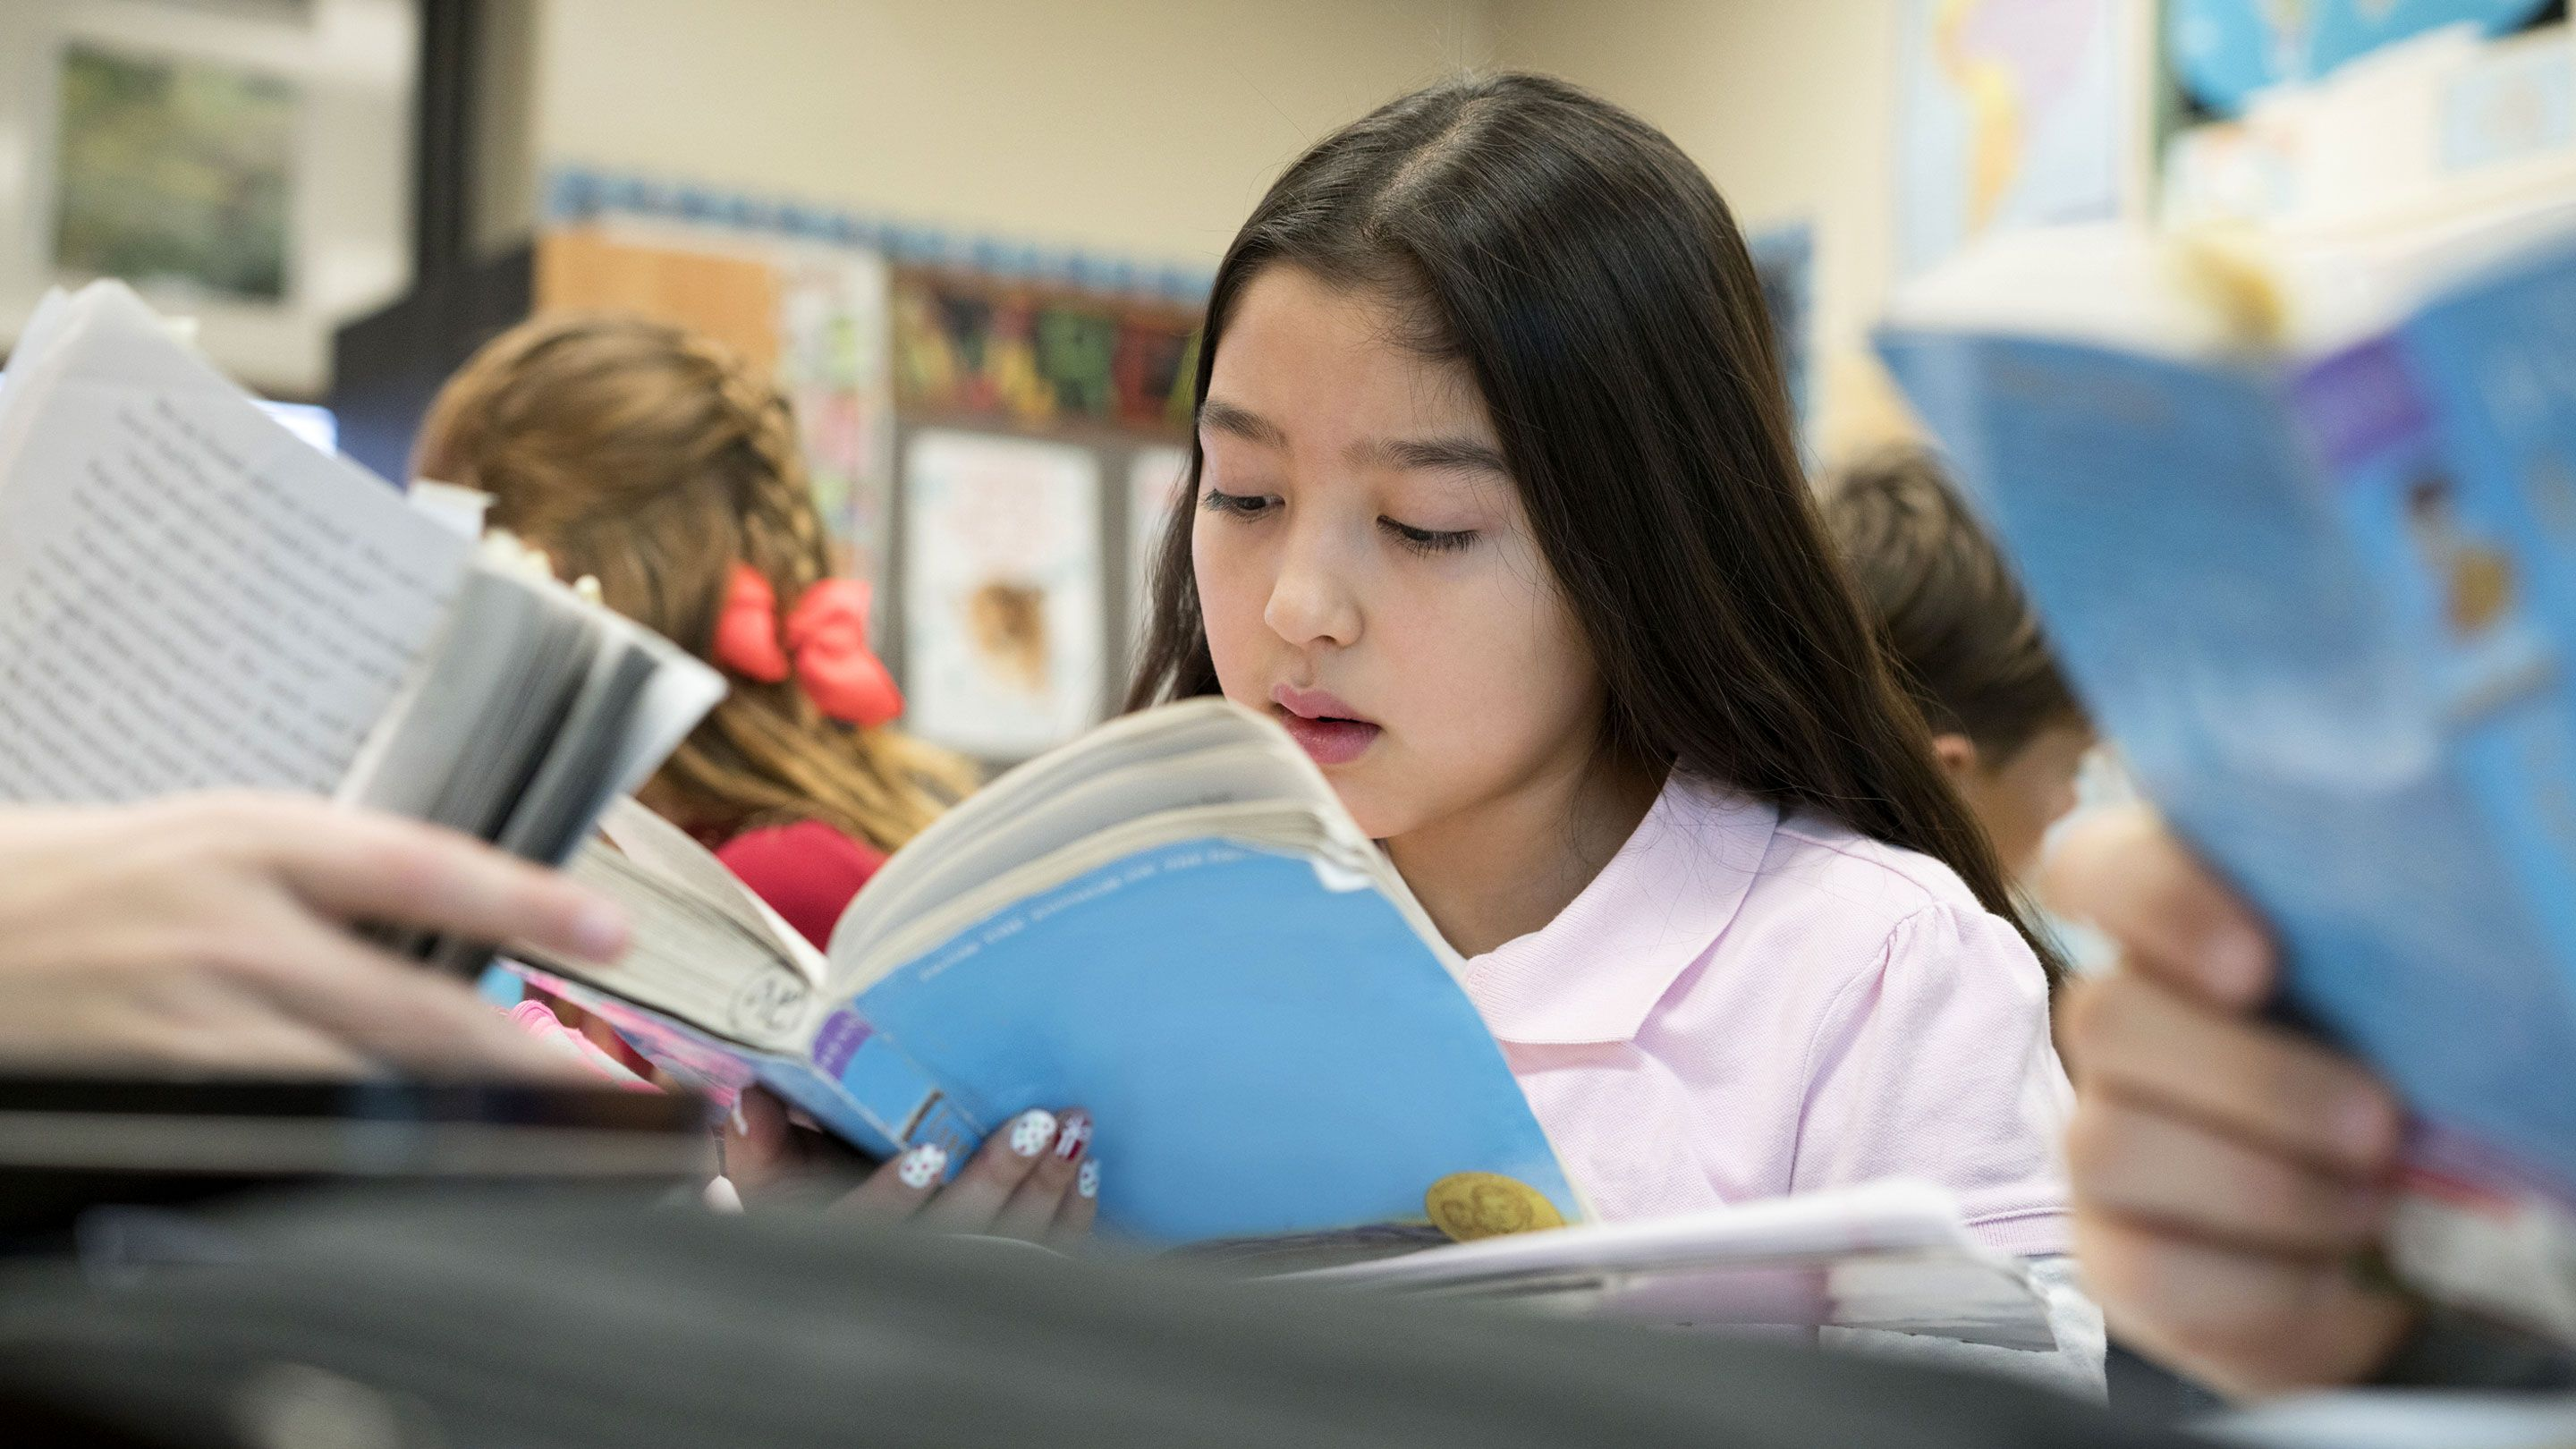 A young girl is deeply engaged in reading in a class full of students.